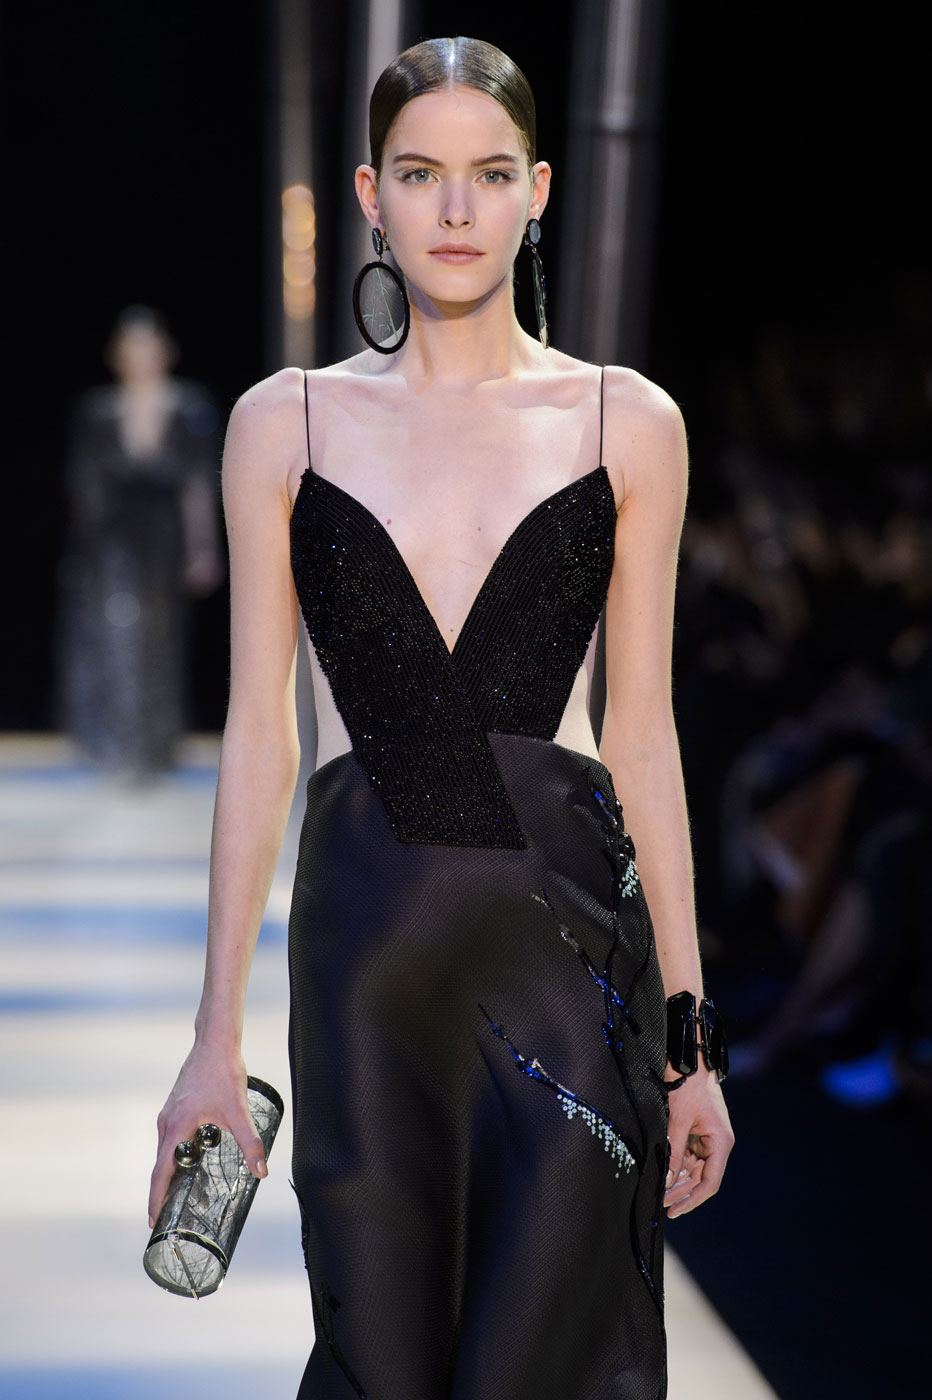 Giorgio-armani-Prive-fashion-runway-show-haute-couture-paris-spring-2015-the-impression-108